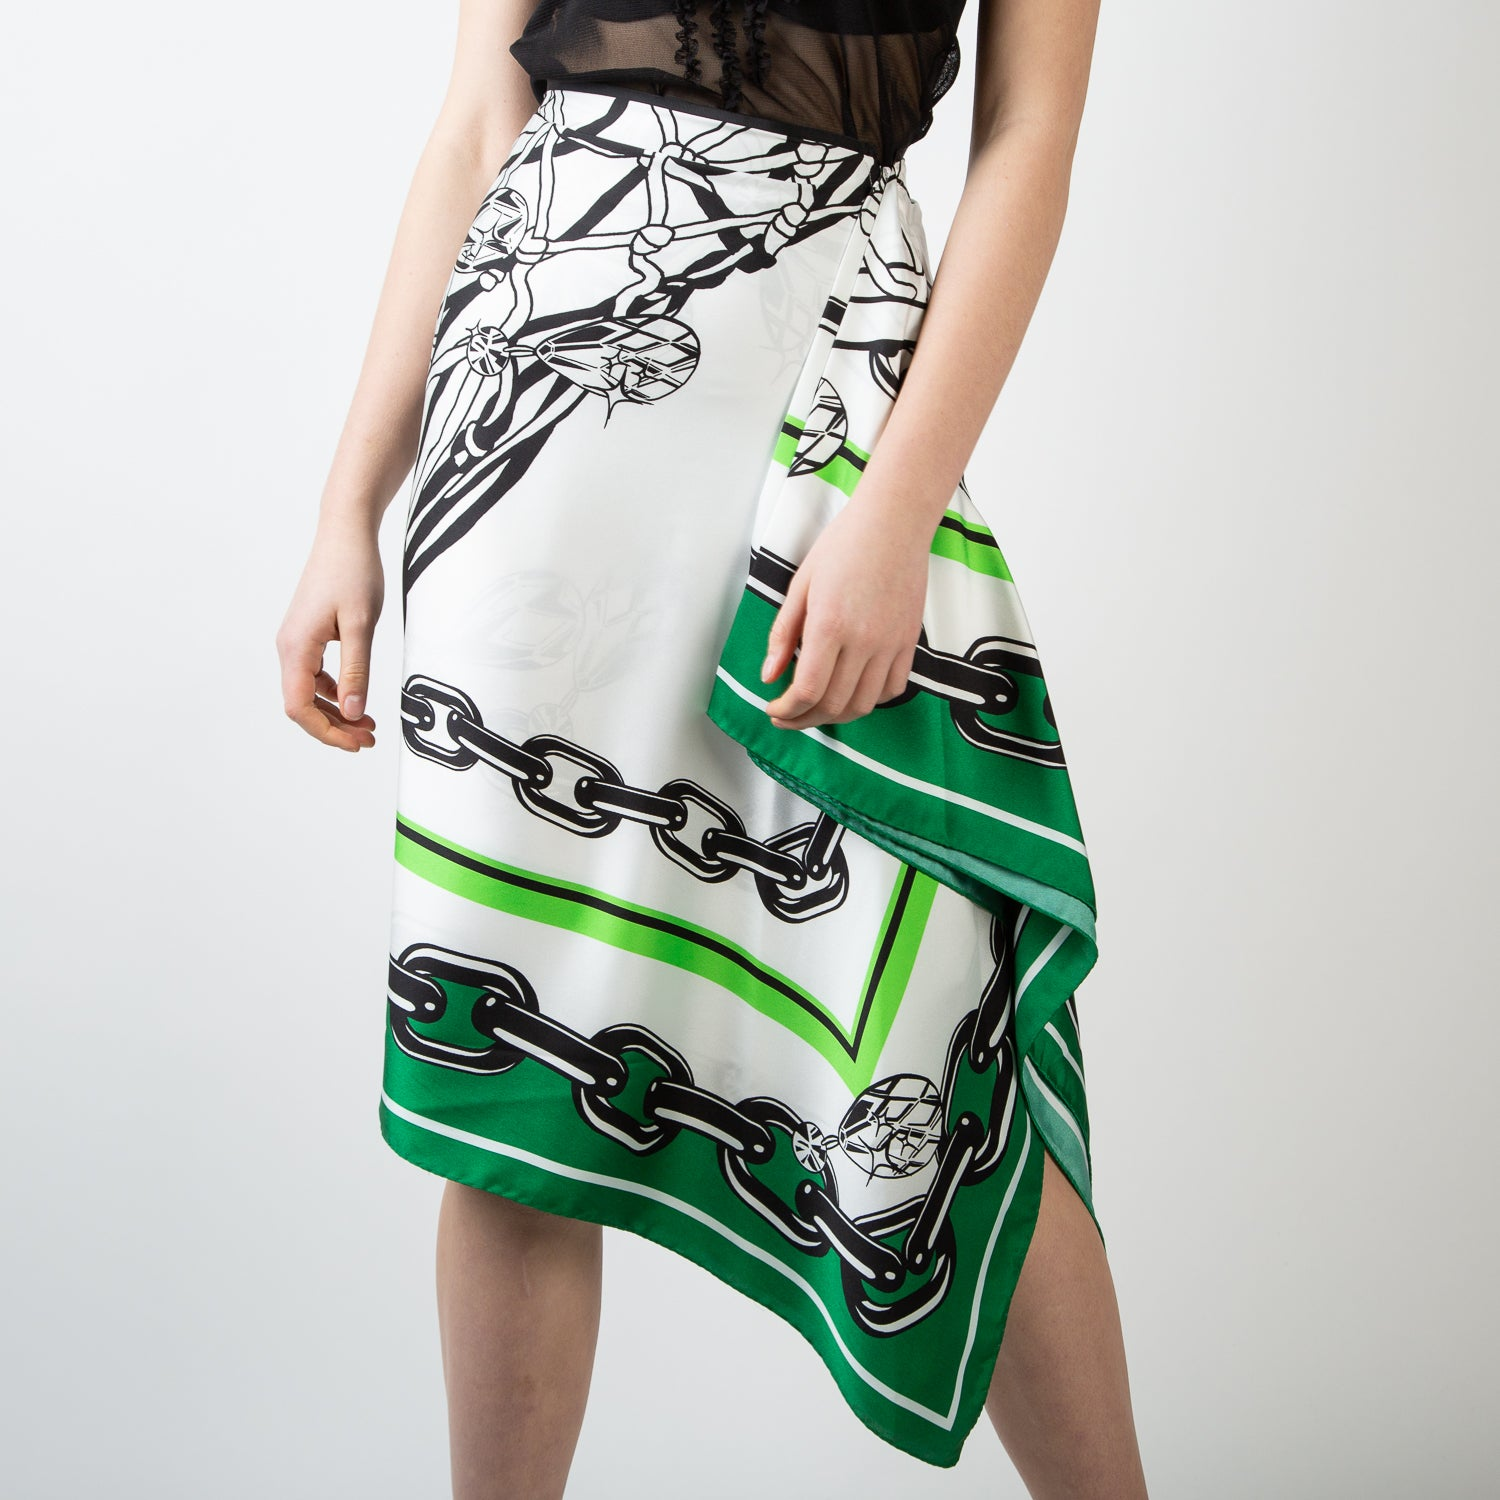 Green Scarf Skirt